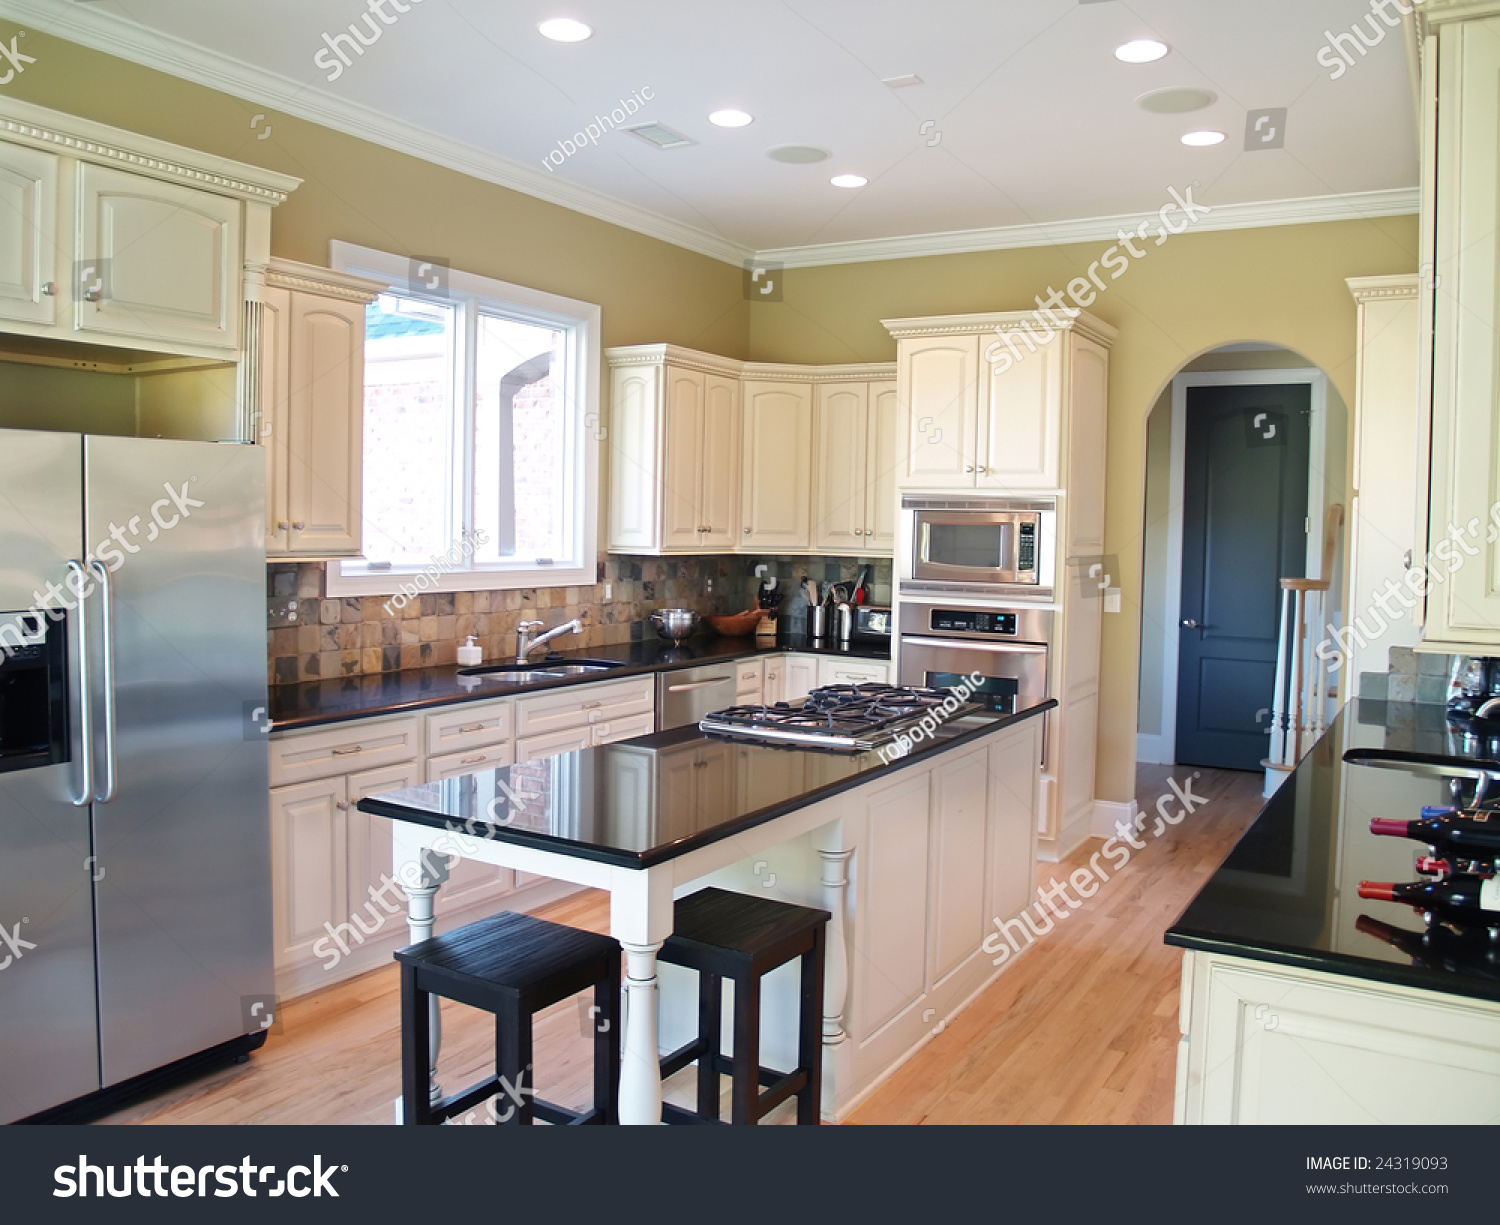 A Modern Kitchen With White Cabinets And Black Granite